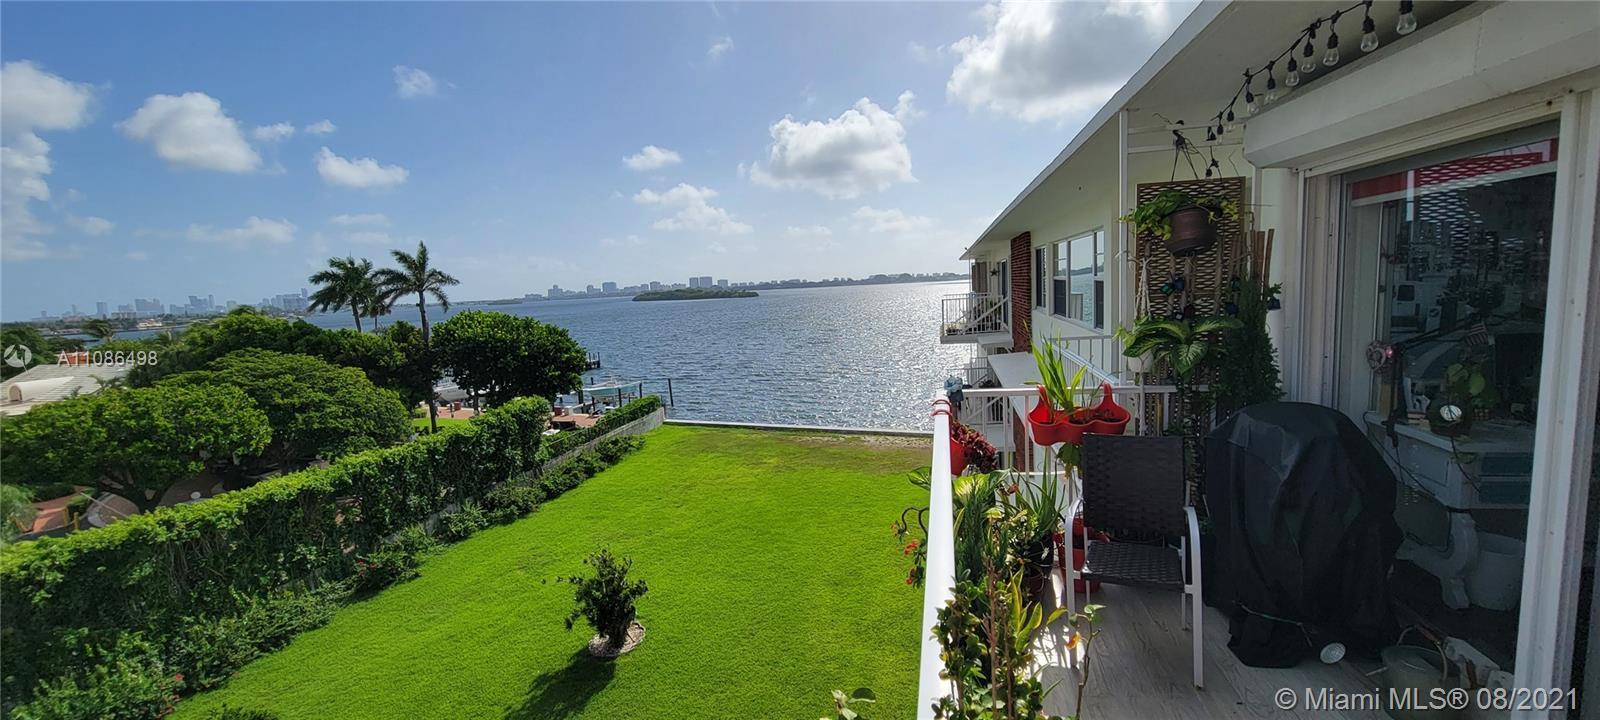 Oversized 1 bed 1.5 baths, top floor condo unit, located in a desirable bayfront building on private